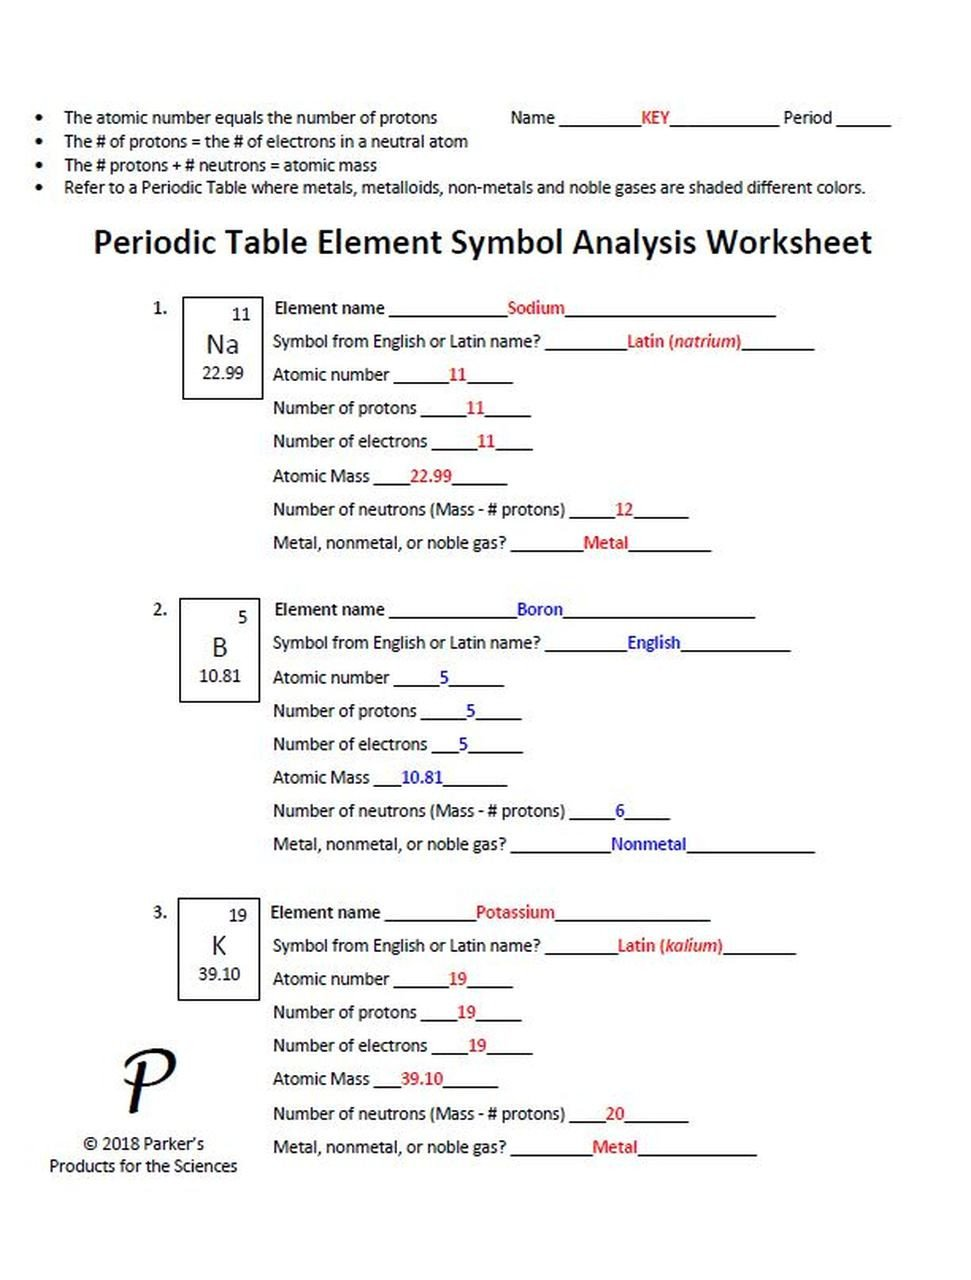 Middle School Periodic Table Worksheets Analysis Of Element Symbols On the Periodic Table Worksheet